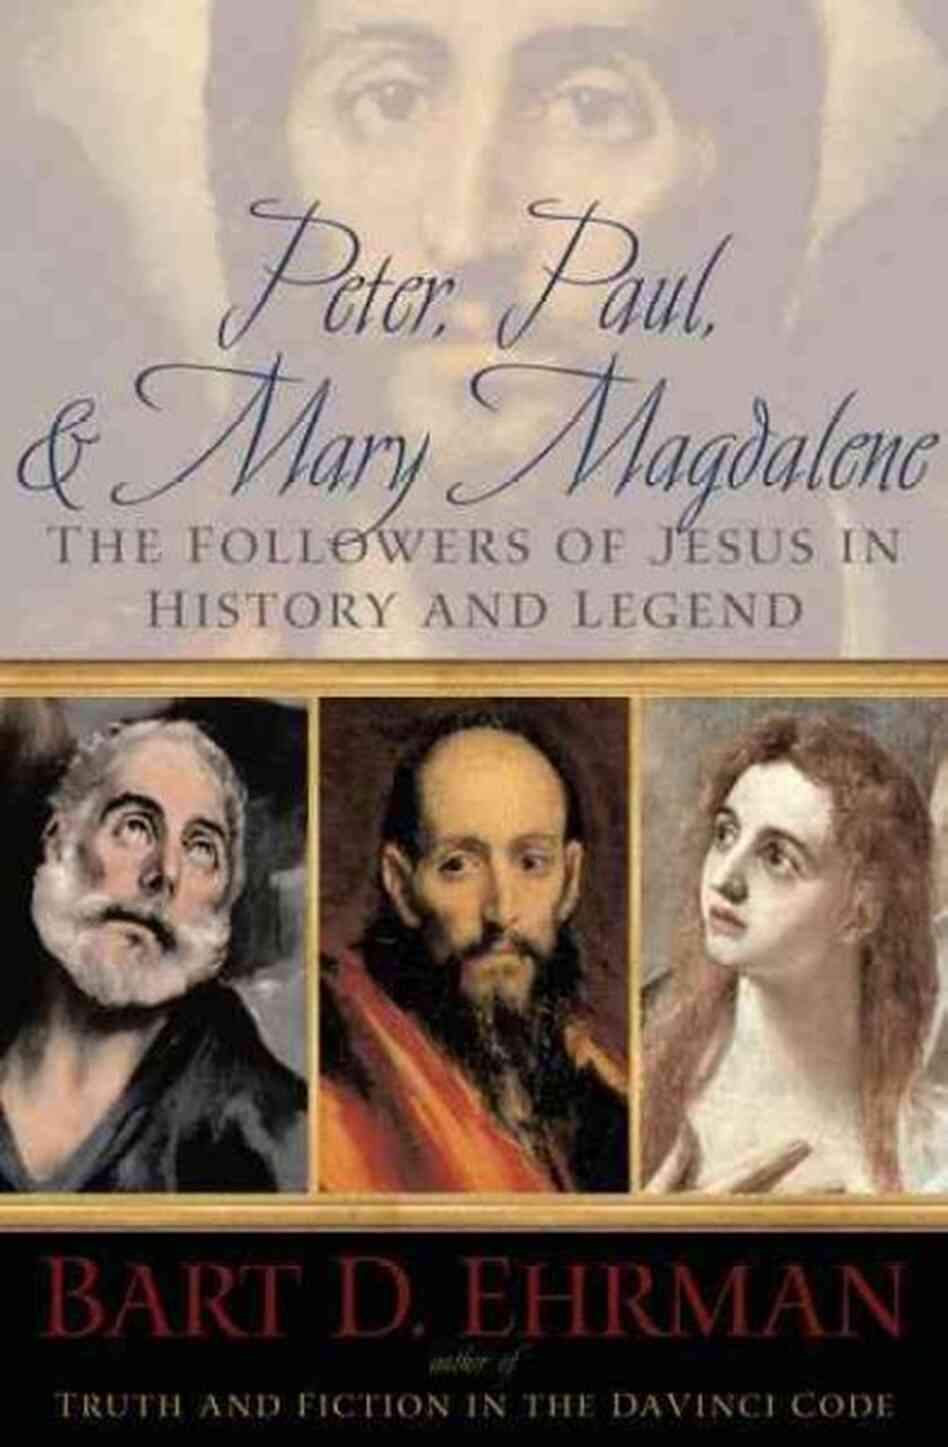 Peter, Paul, And Mary Magdalene